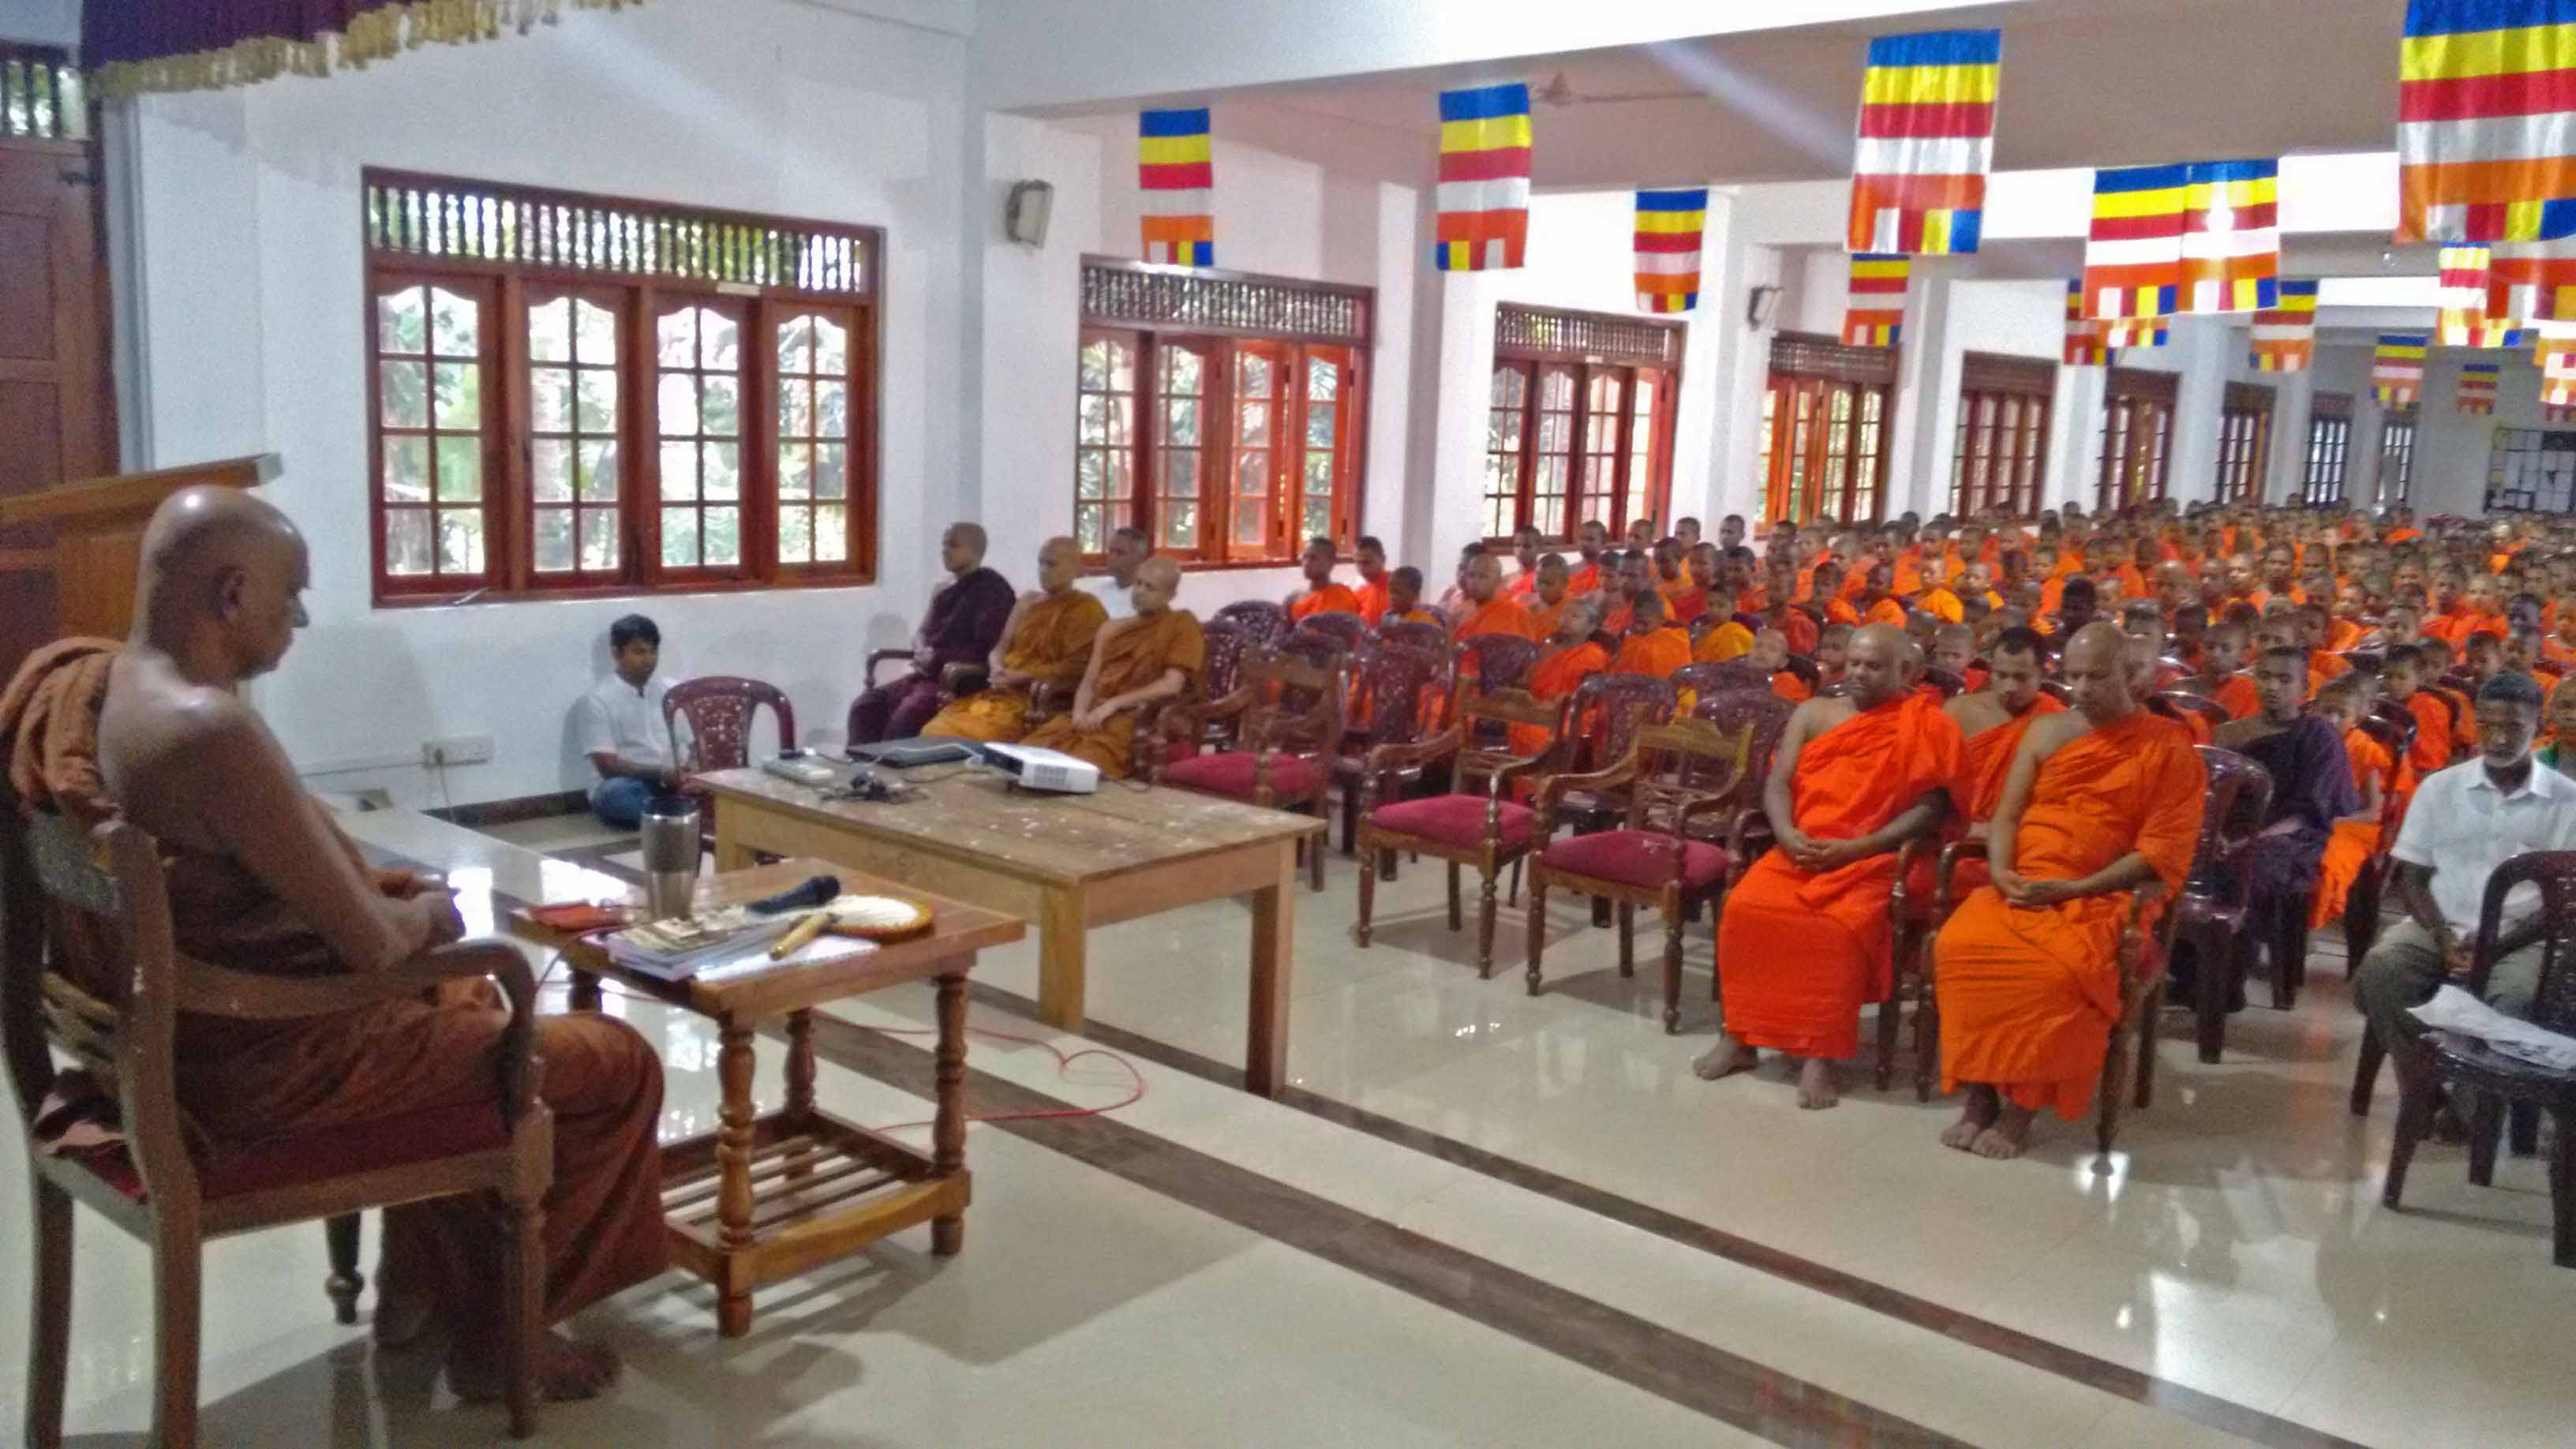 Sati Pirivena Introduction Programme at Mahavihara Maha Pirivena - Asgiriya, Kandy (9)